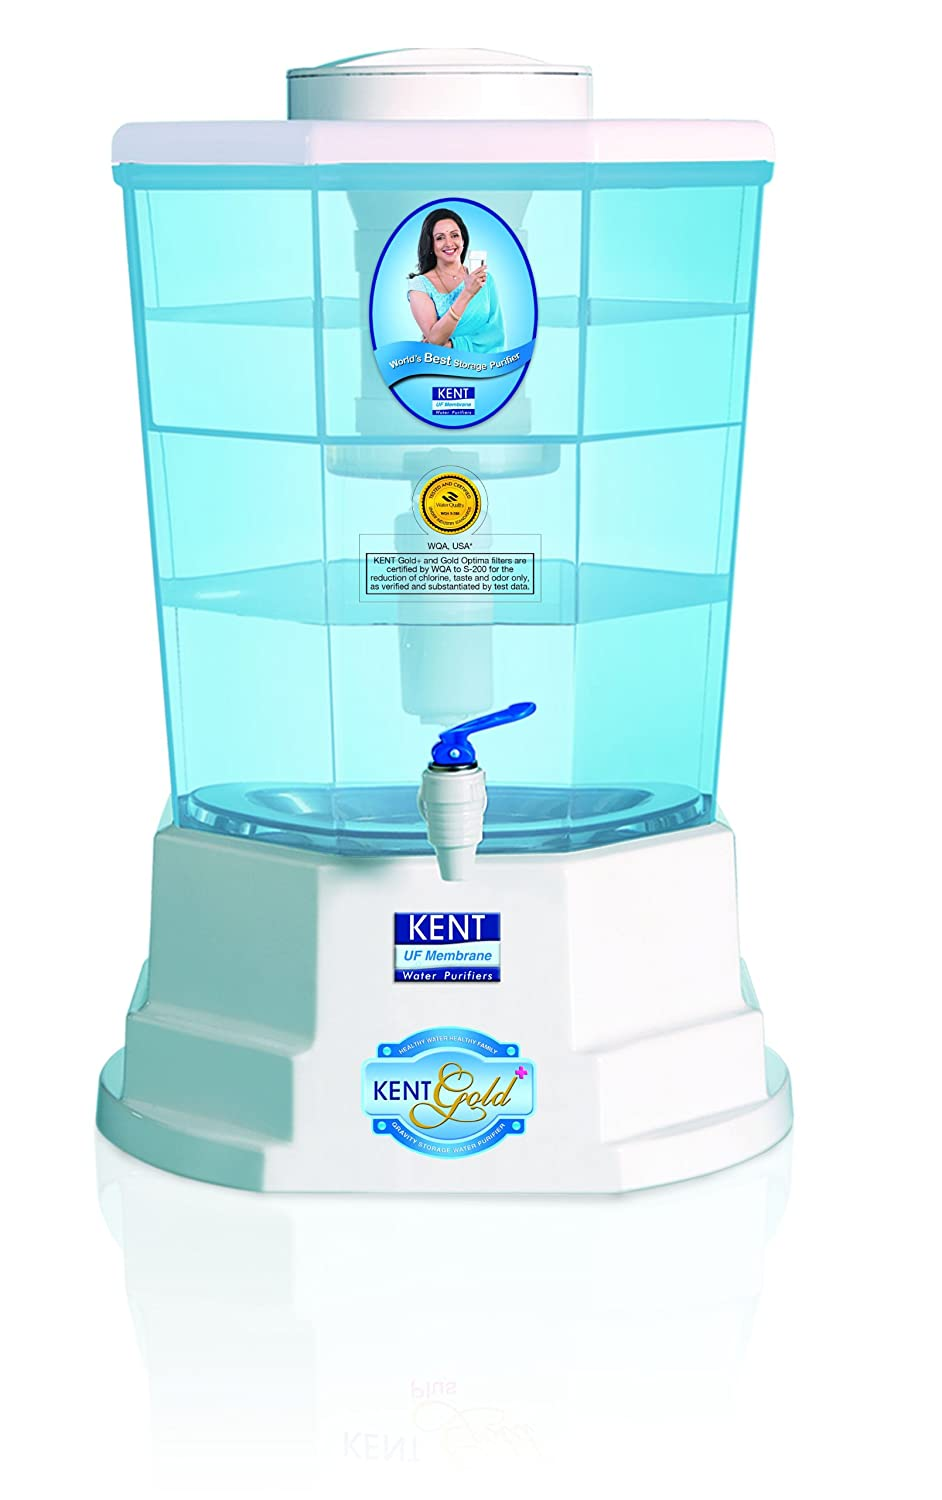 Open-Box & Refurbished (Unused) KENT Gold+ 20-litres Gravity Based Water Purifier, White and Blue kida.in